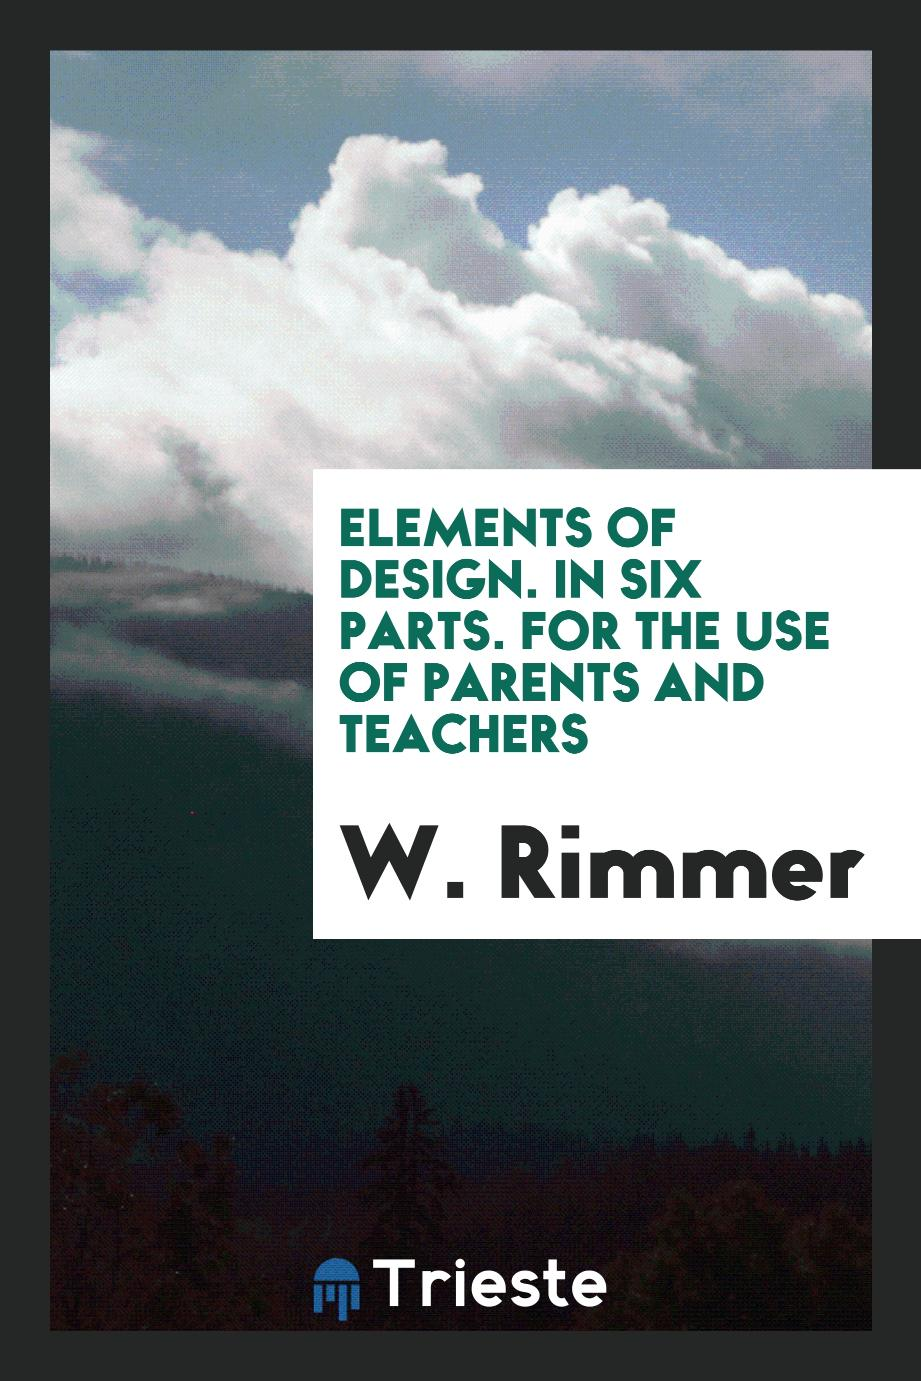 Elements of Design. In Six Parts. For the Use of Parents and Teachers